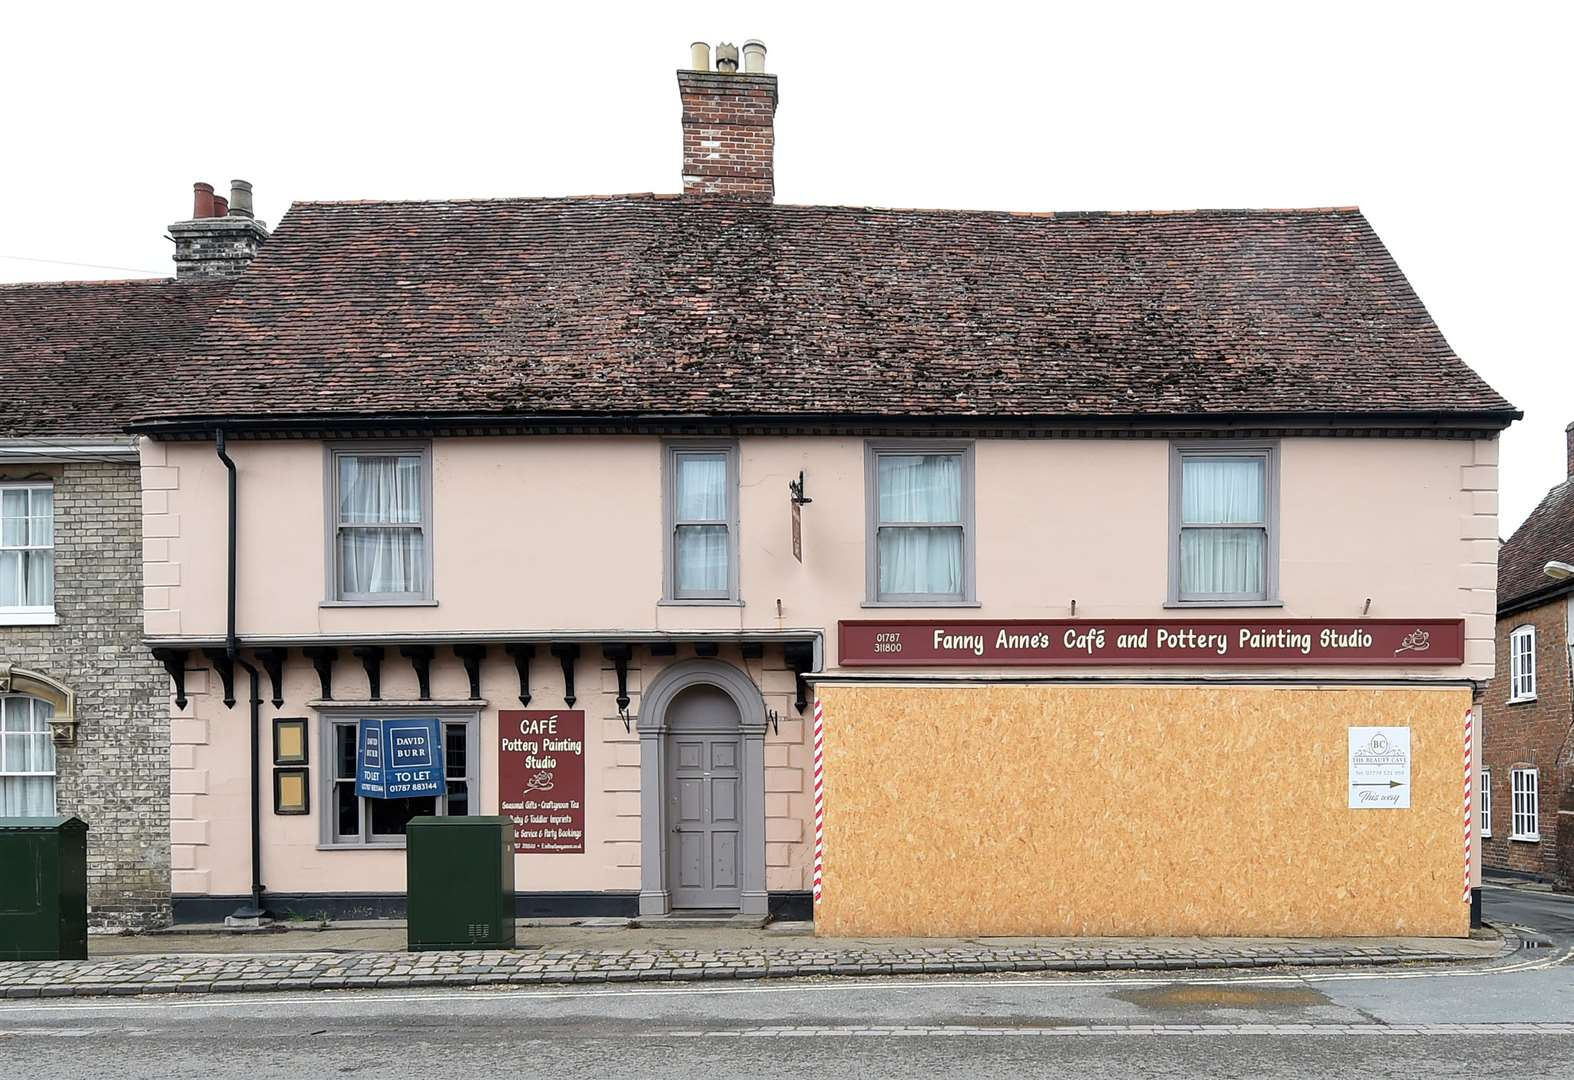 New working group formed in Long Melford to address shop closures and footfall decline